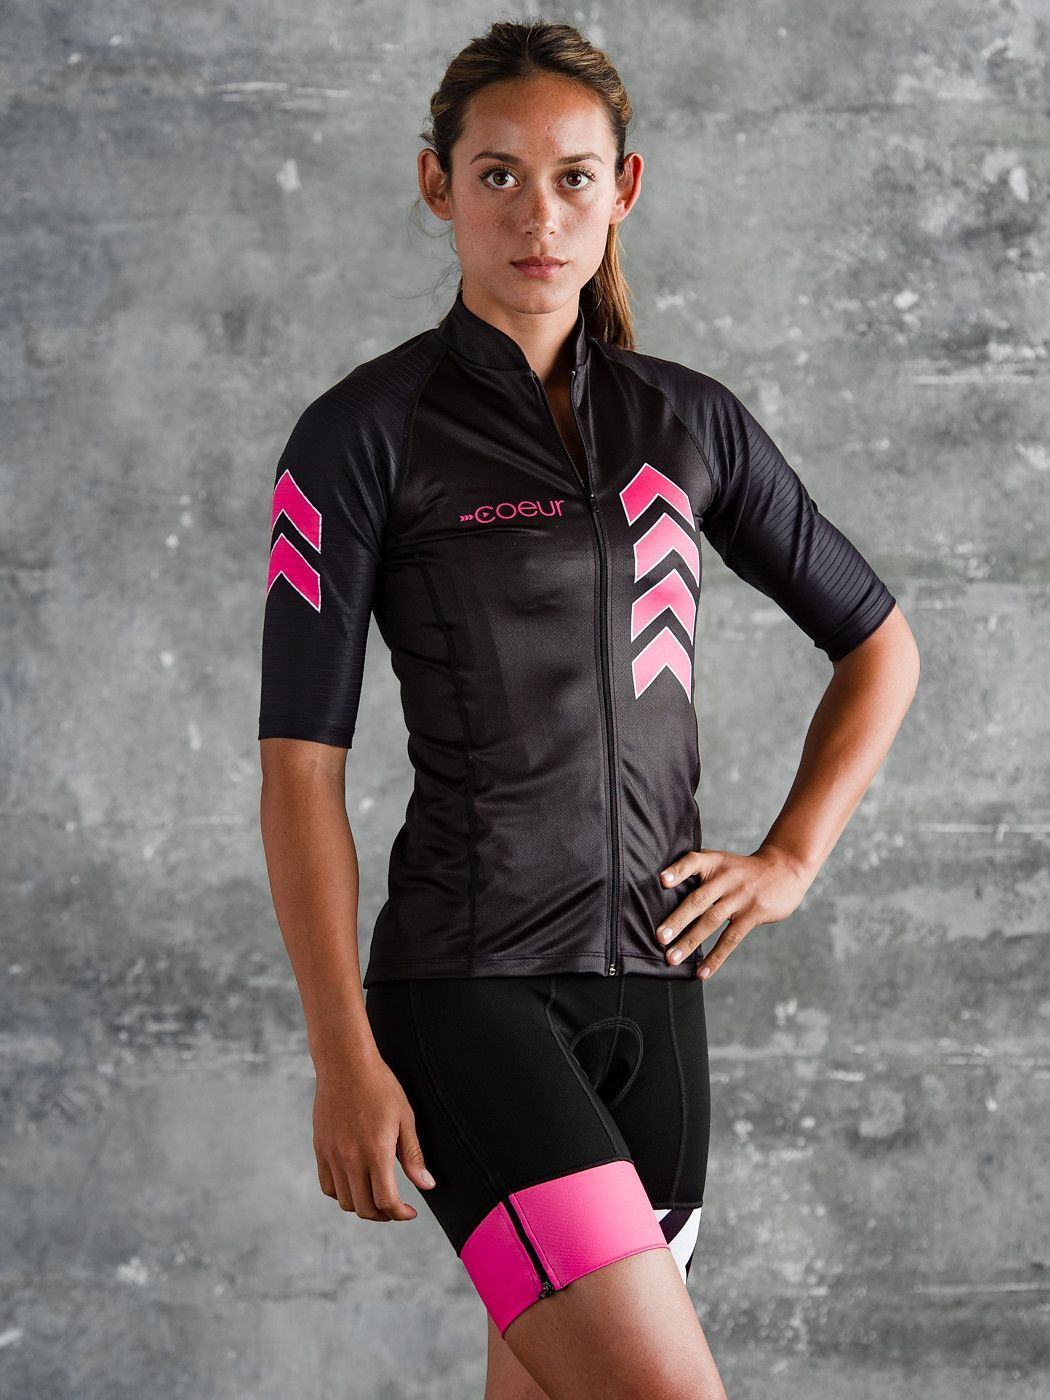 966583dd2 Women s Aero Cycling Jersey Top The Zele line was created for women who  value…